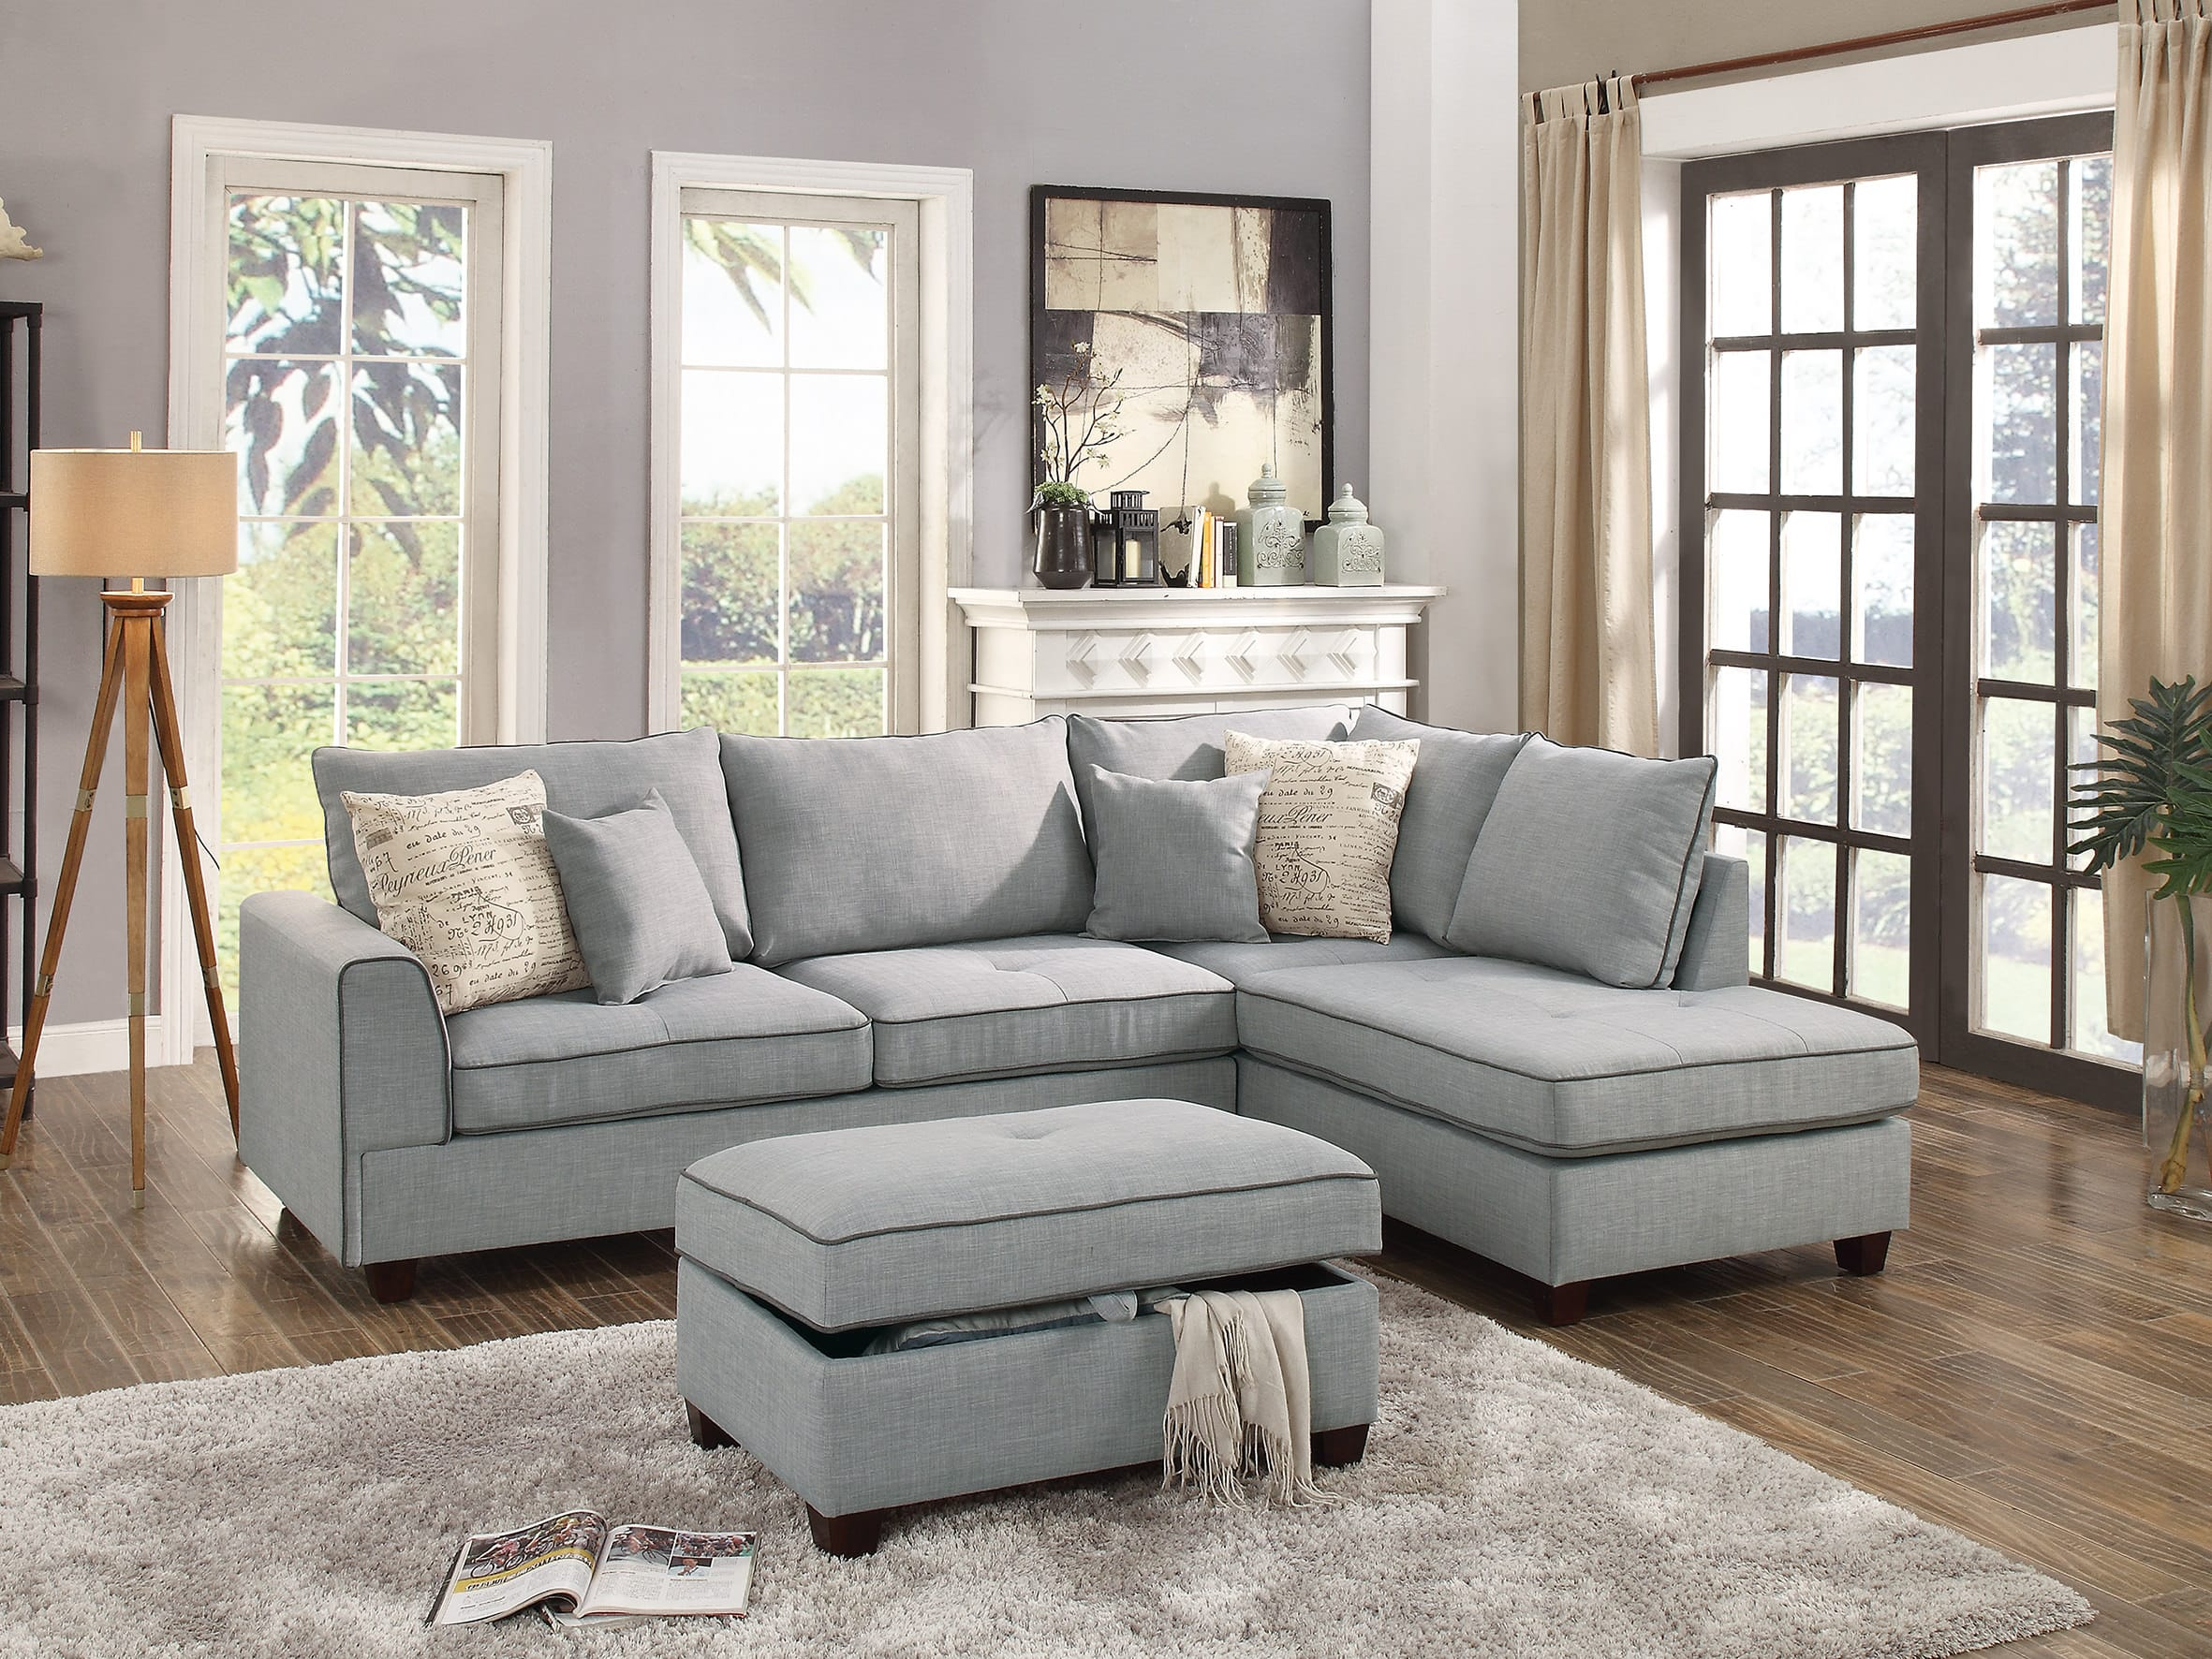 F6543 Light Gray 3 Pcs Sectional Sofa Set by Poundex